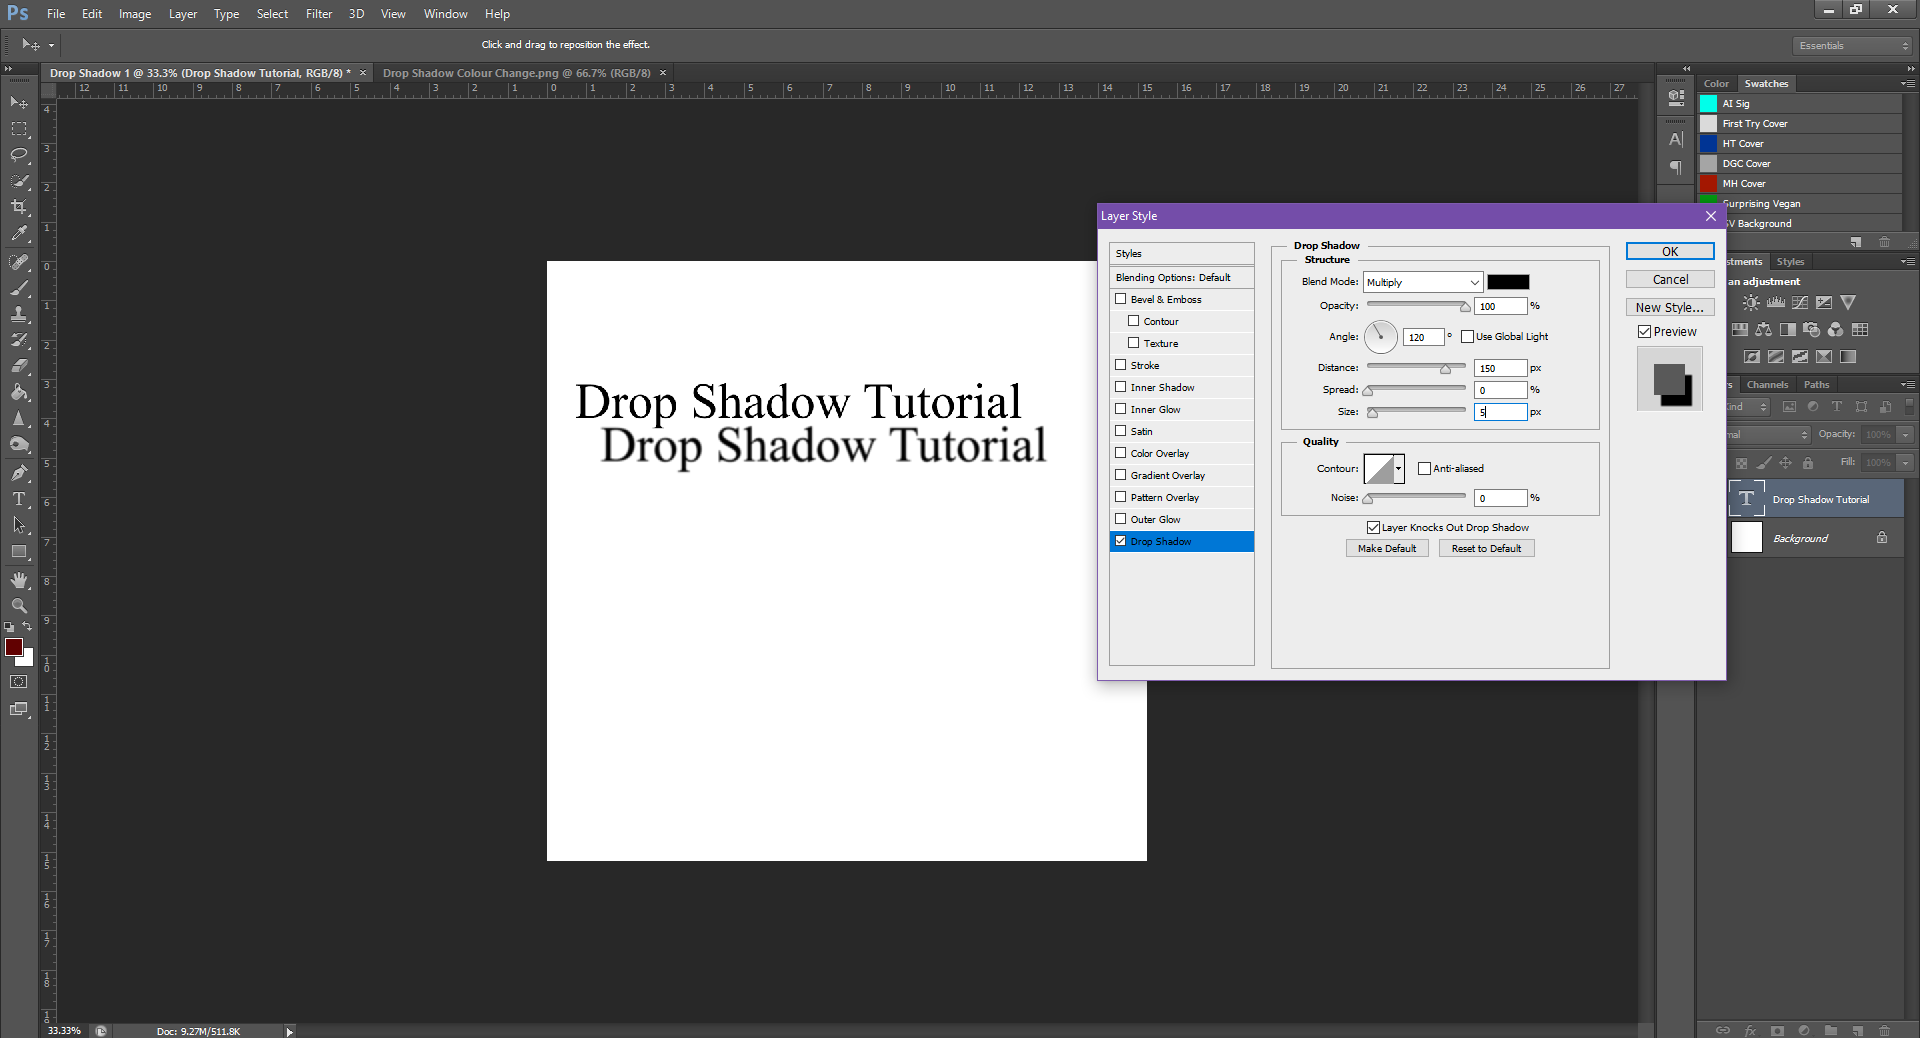 AterImber.com - Writing - Writing Tips - PHSH Tutorial - Drop Shadow - Size 5